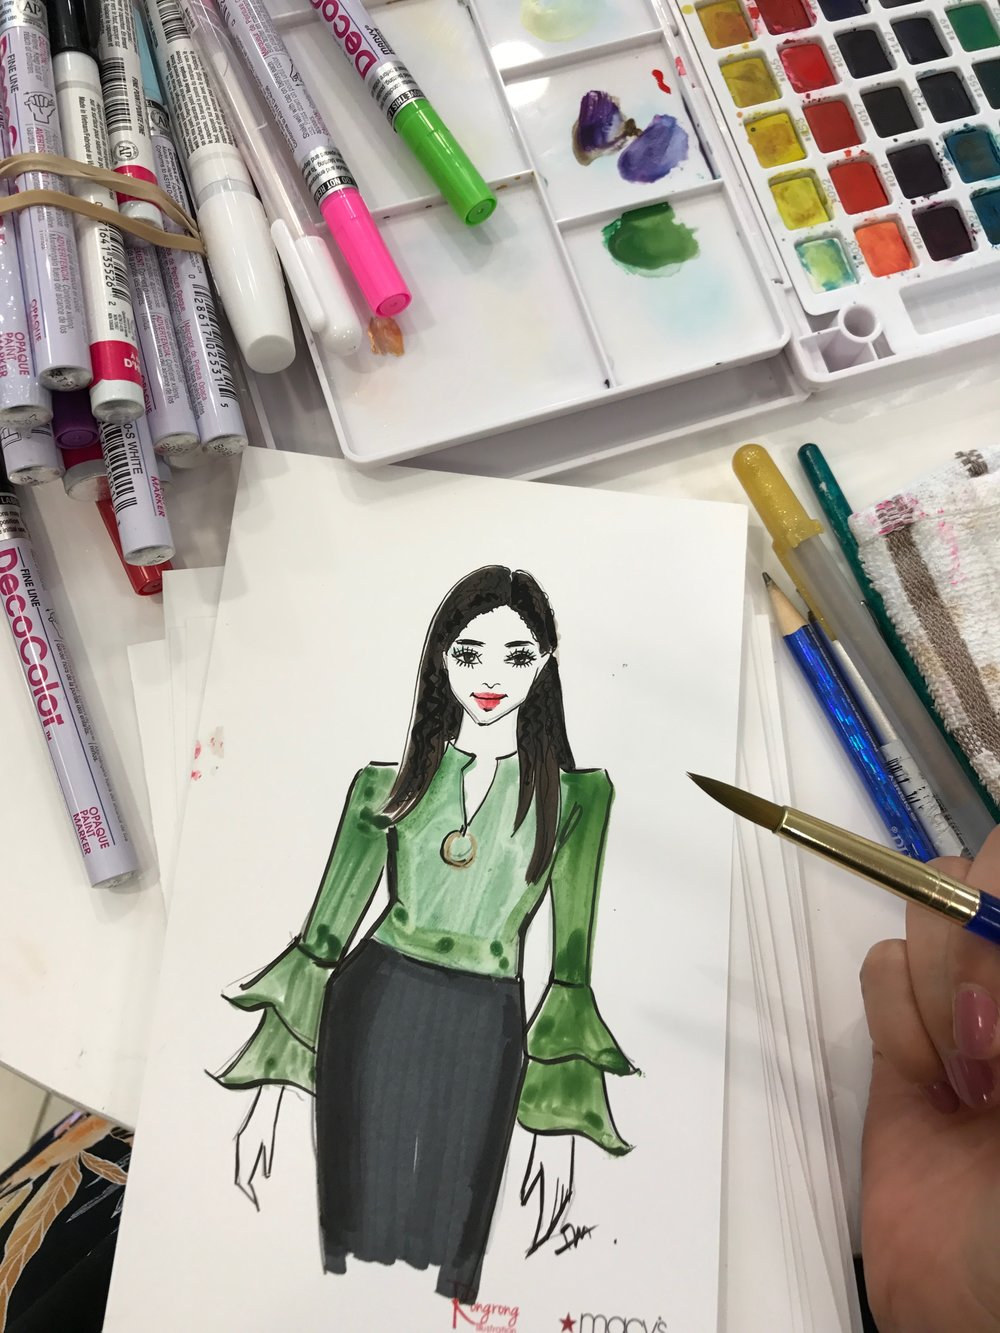 Rongrong DeVoe-event illustrator live sketching at Macy's Fall Fashion Event.jpeg